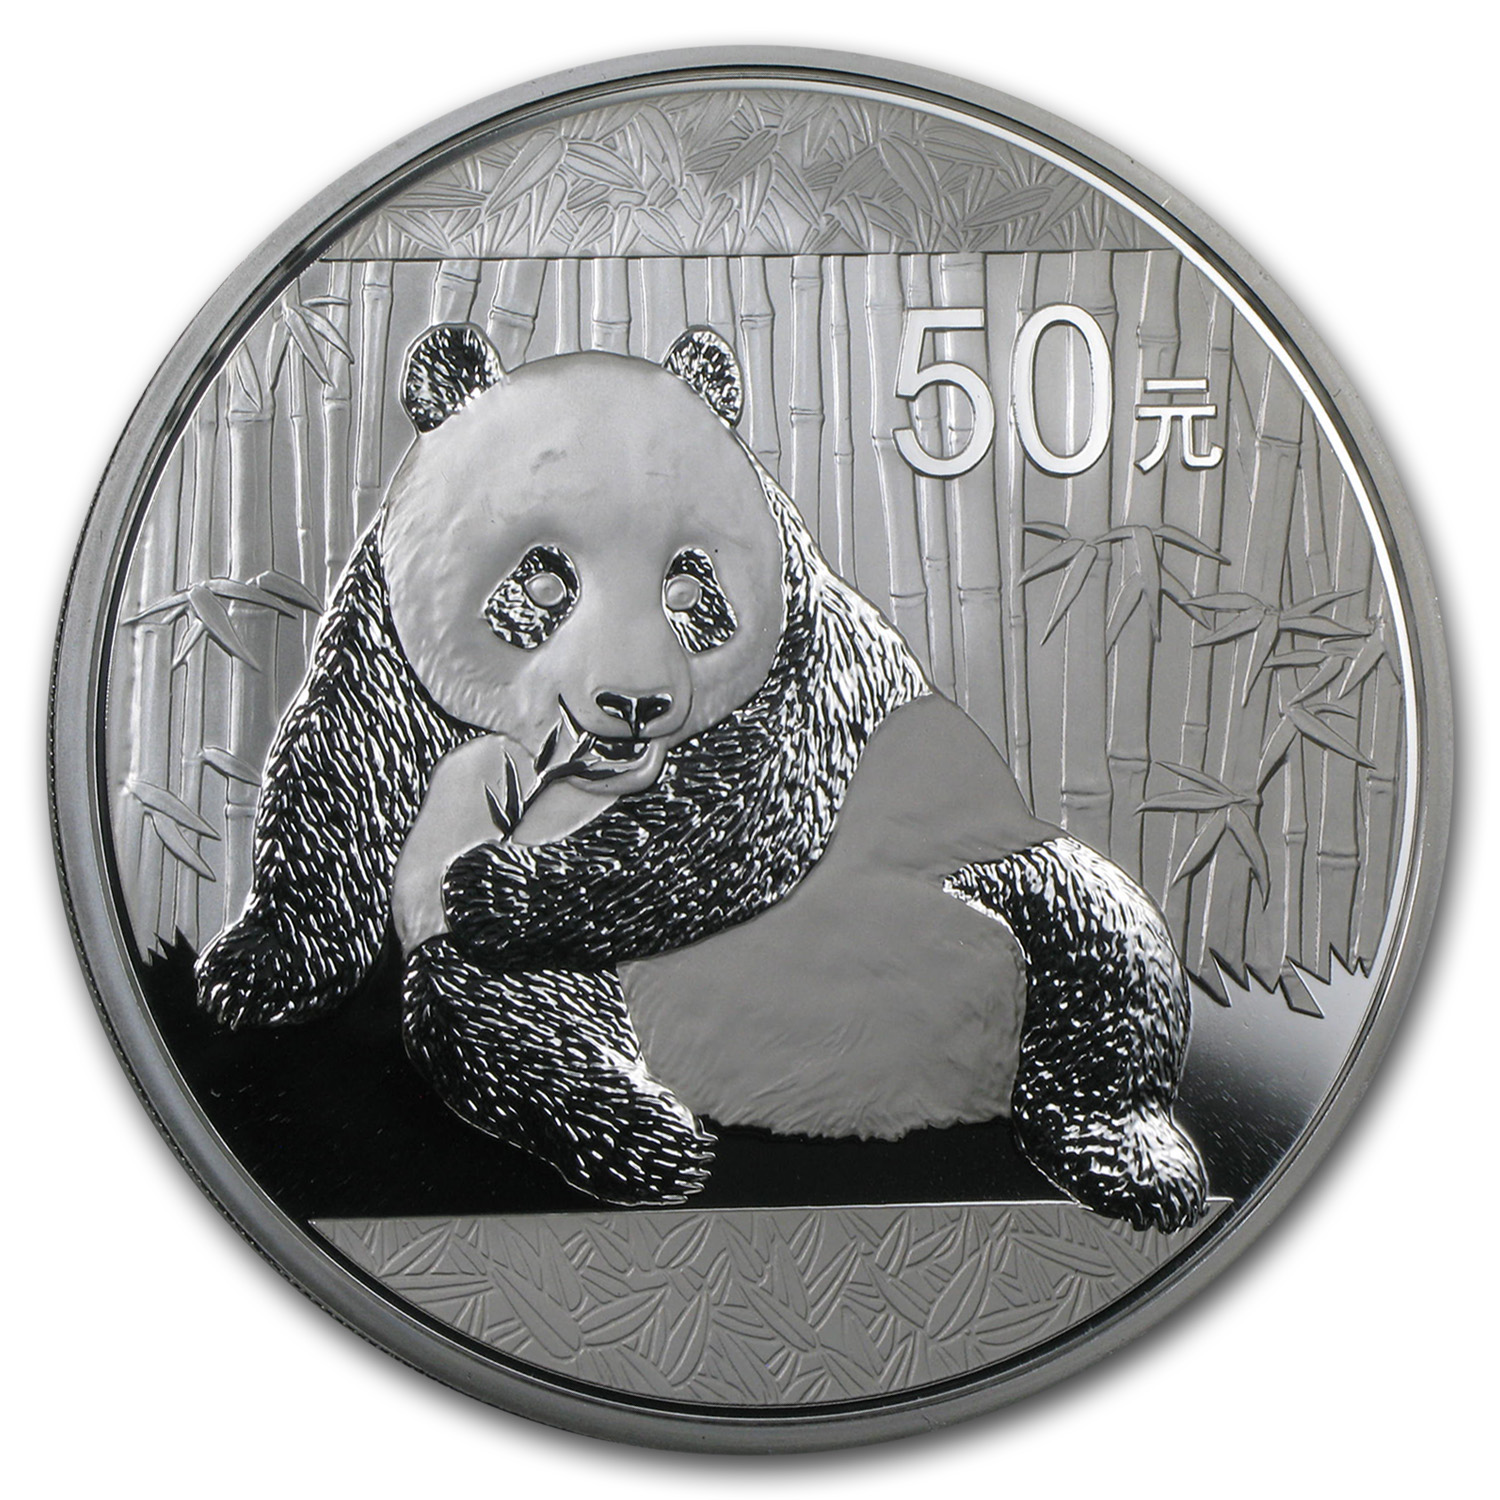 2015 China 5 oz Silver Panda Proof (w/Box & COA)